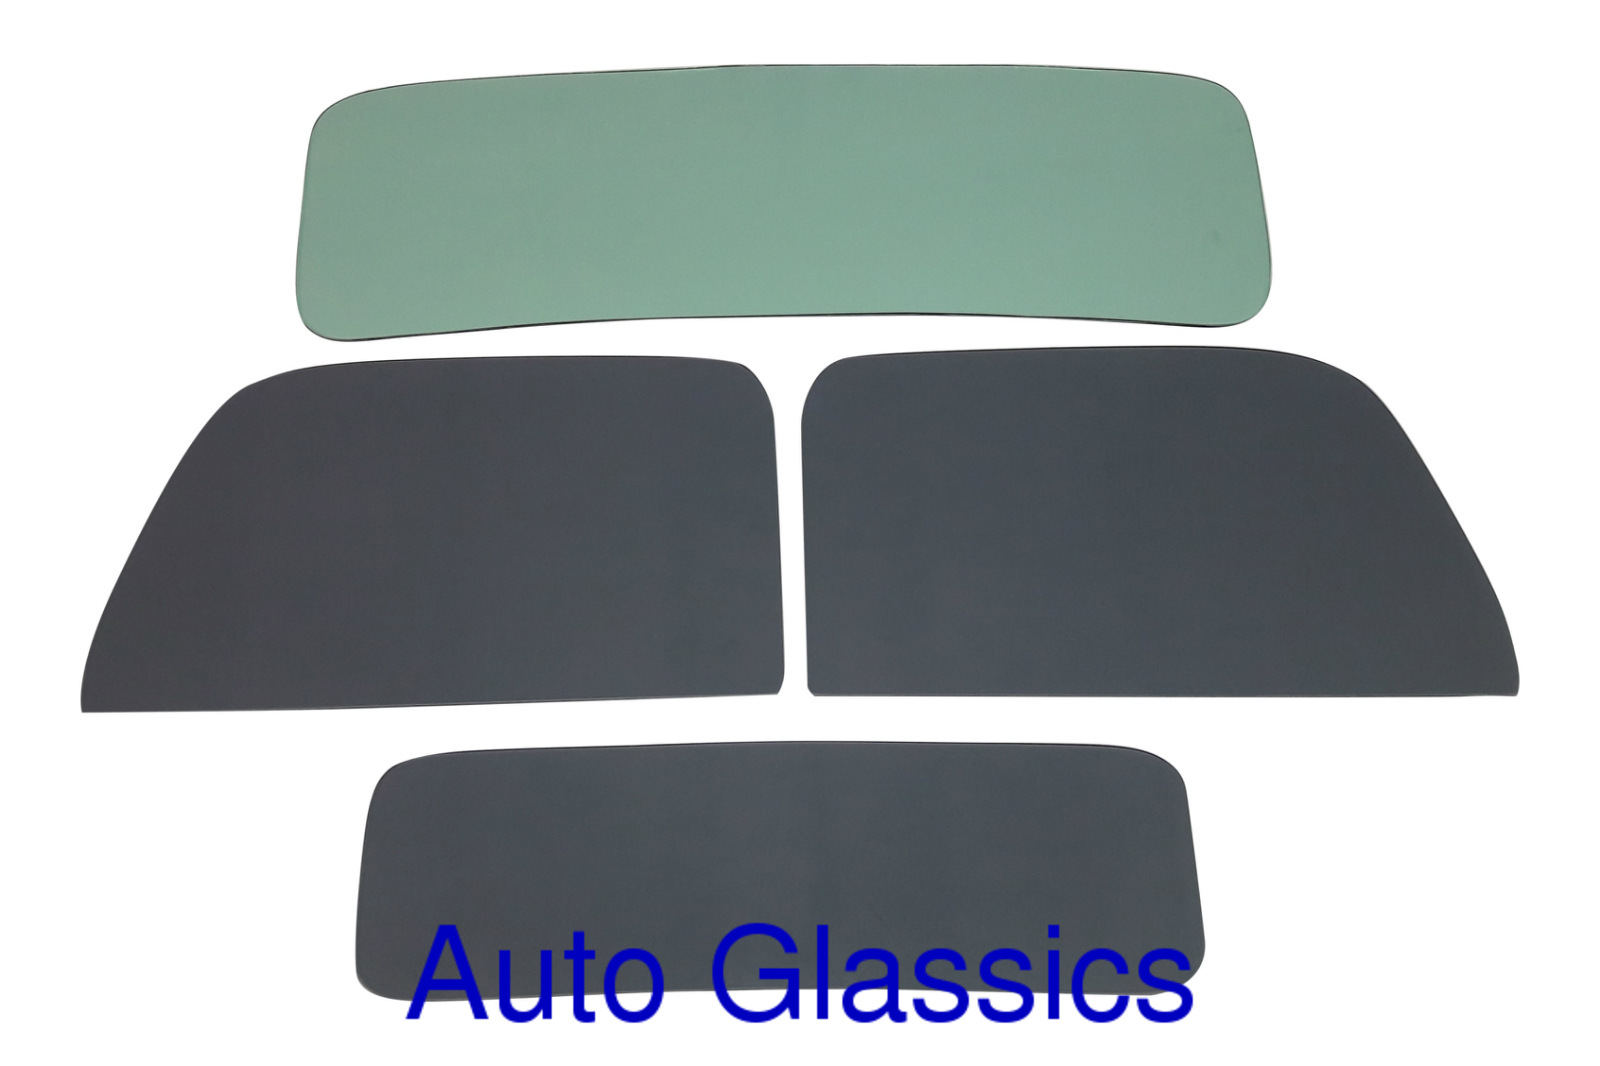 1935 1936 Ford Pickup Truck Auto Glass Kit NEW Cla